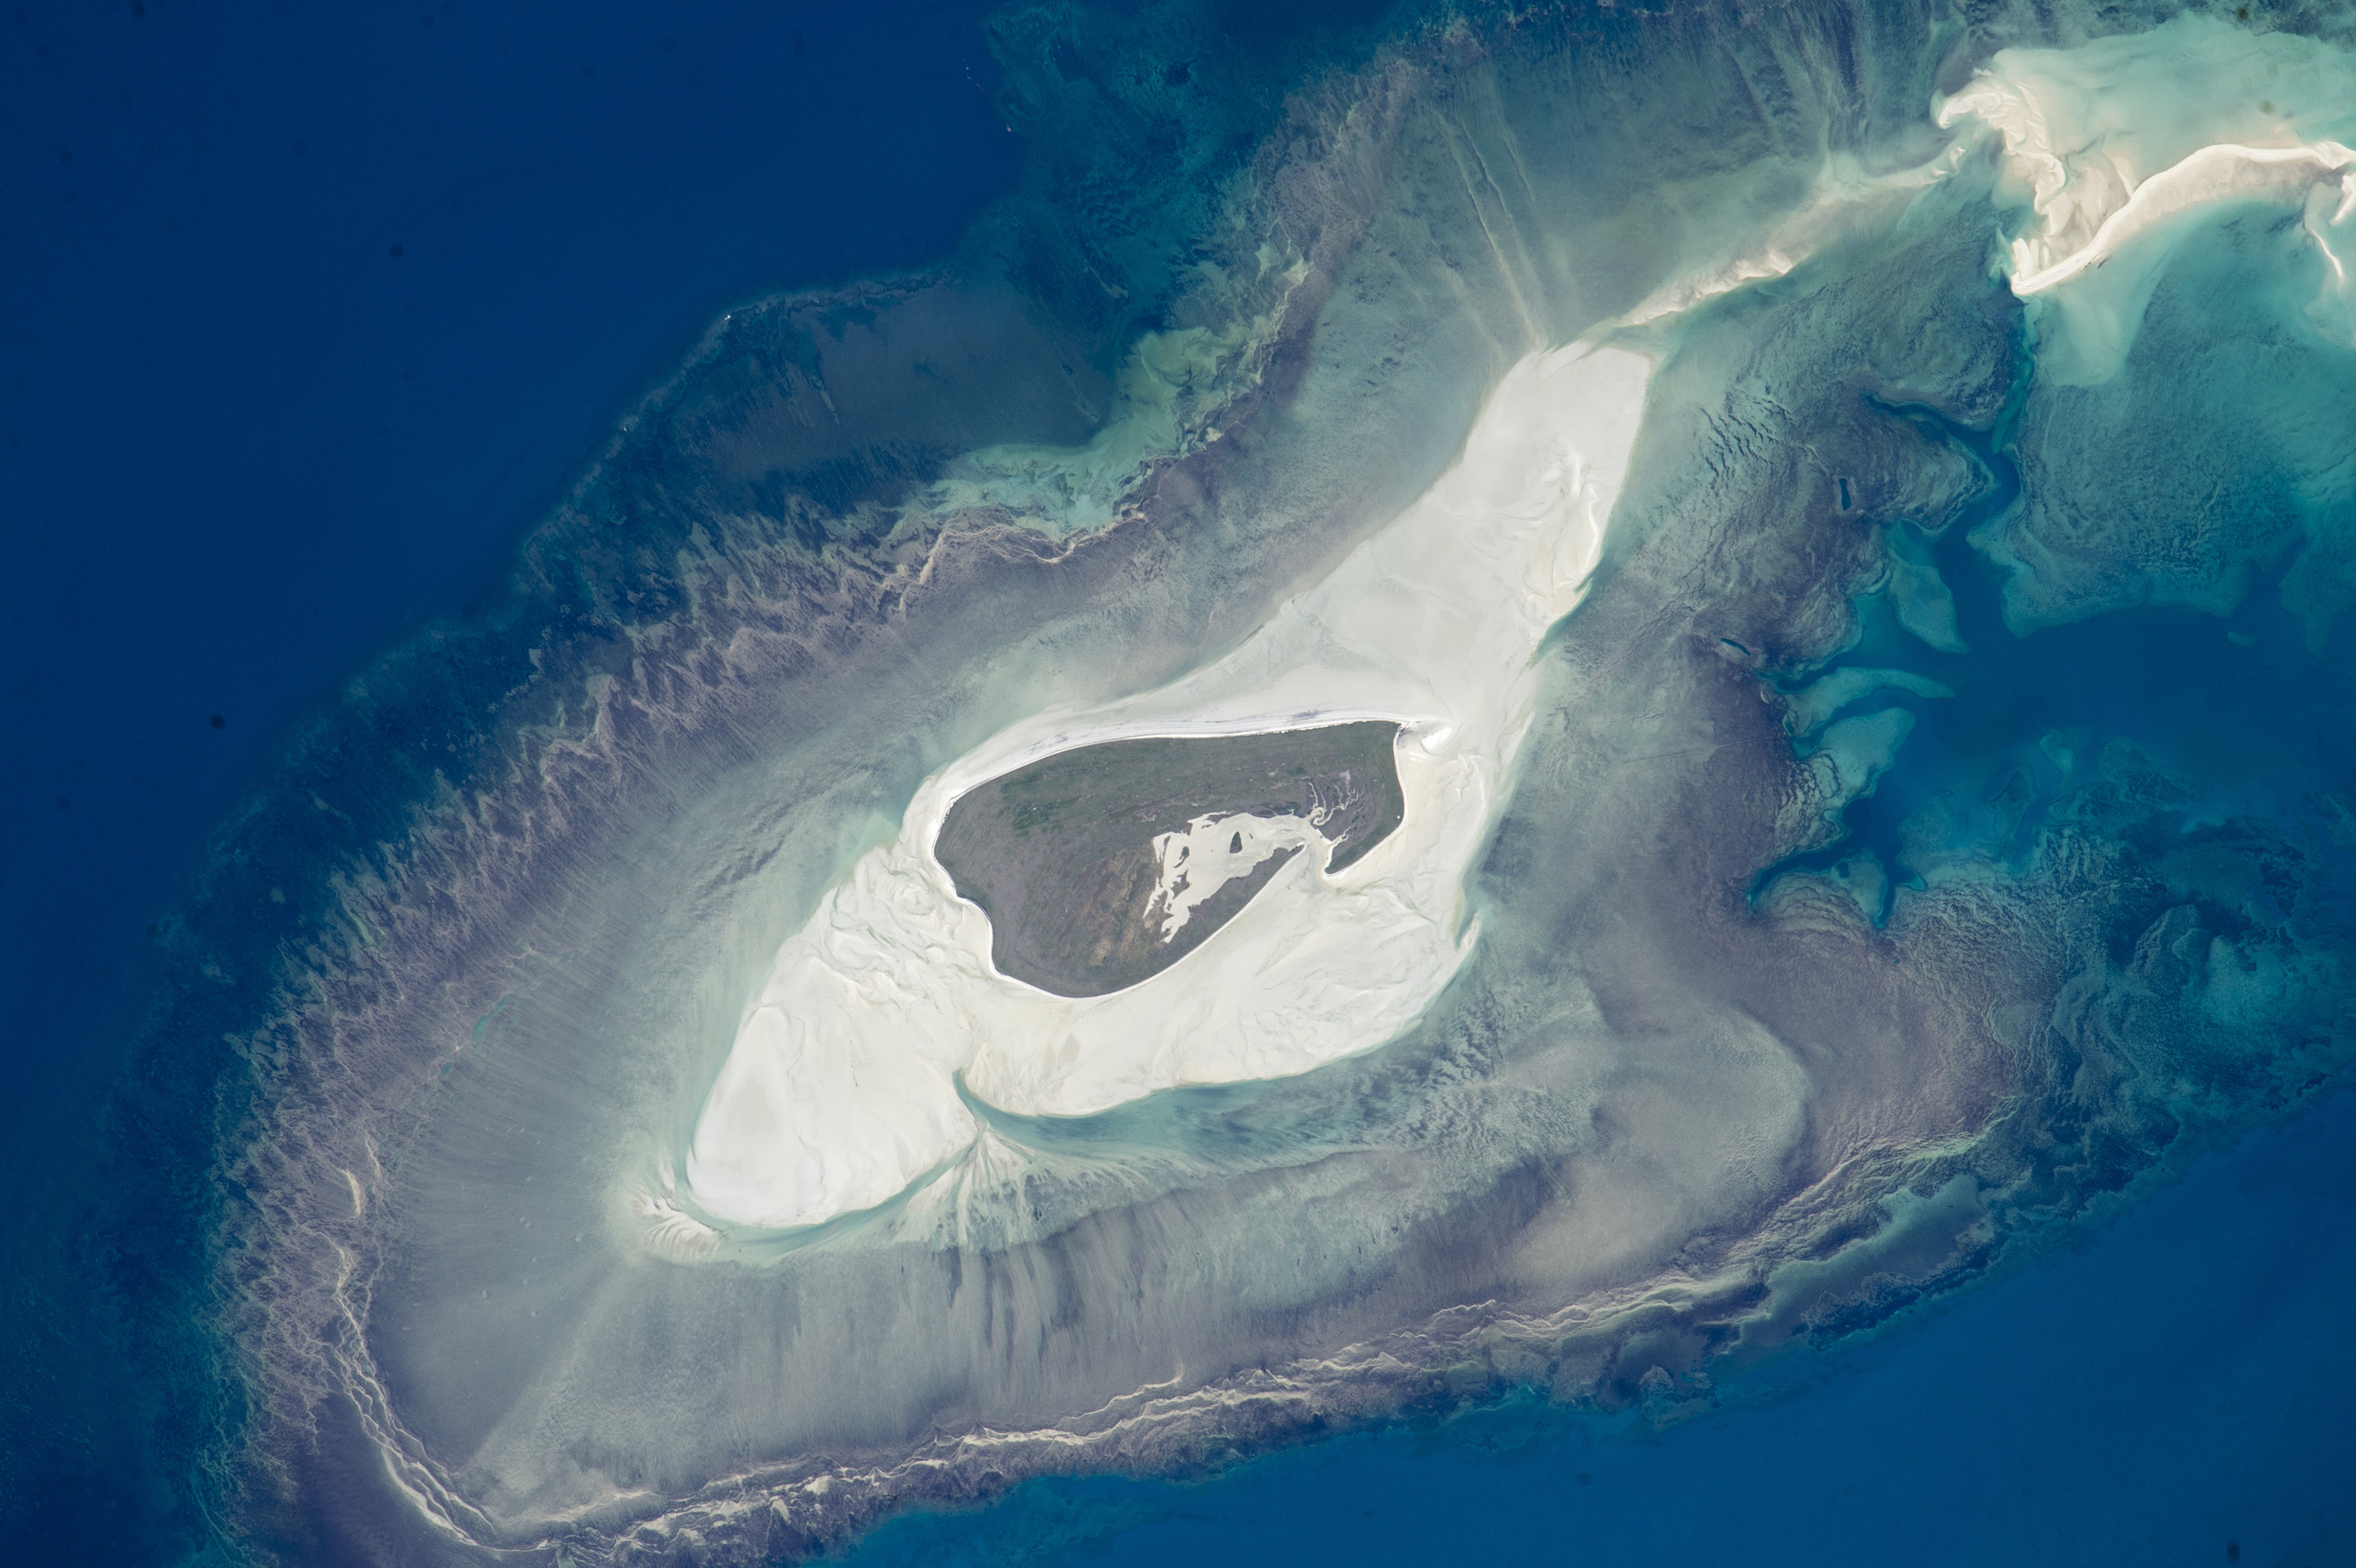 Today's Image of the Day comes courtesy of the NASA Earth Observatory and features a look at Adele Island, situated off the northern coast of Australia.